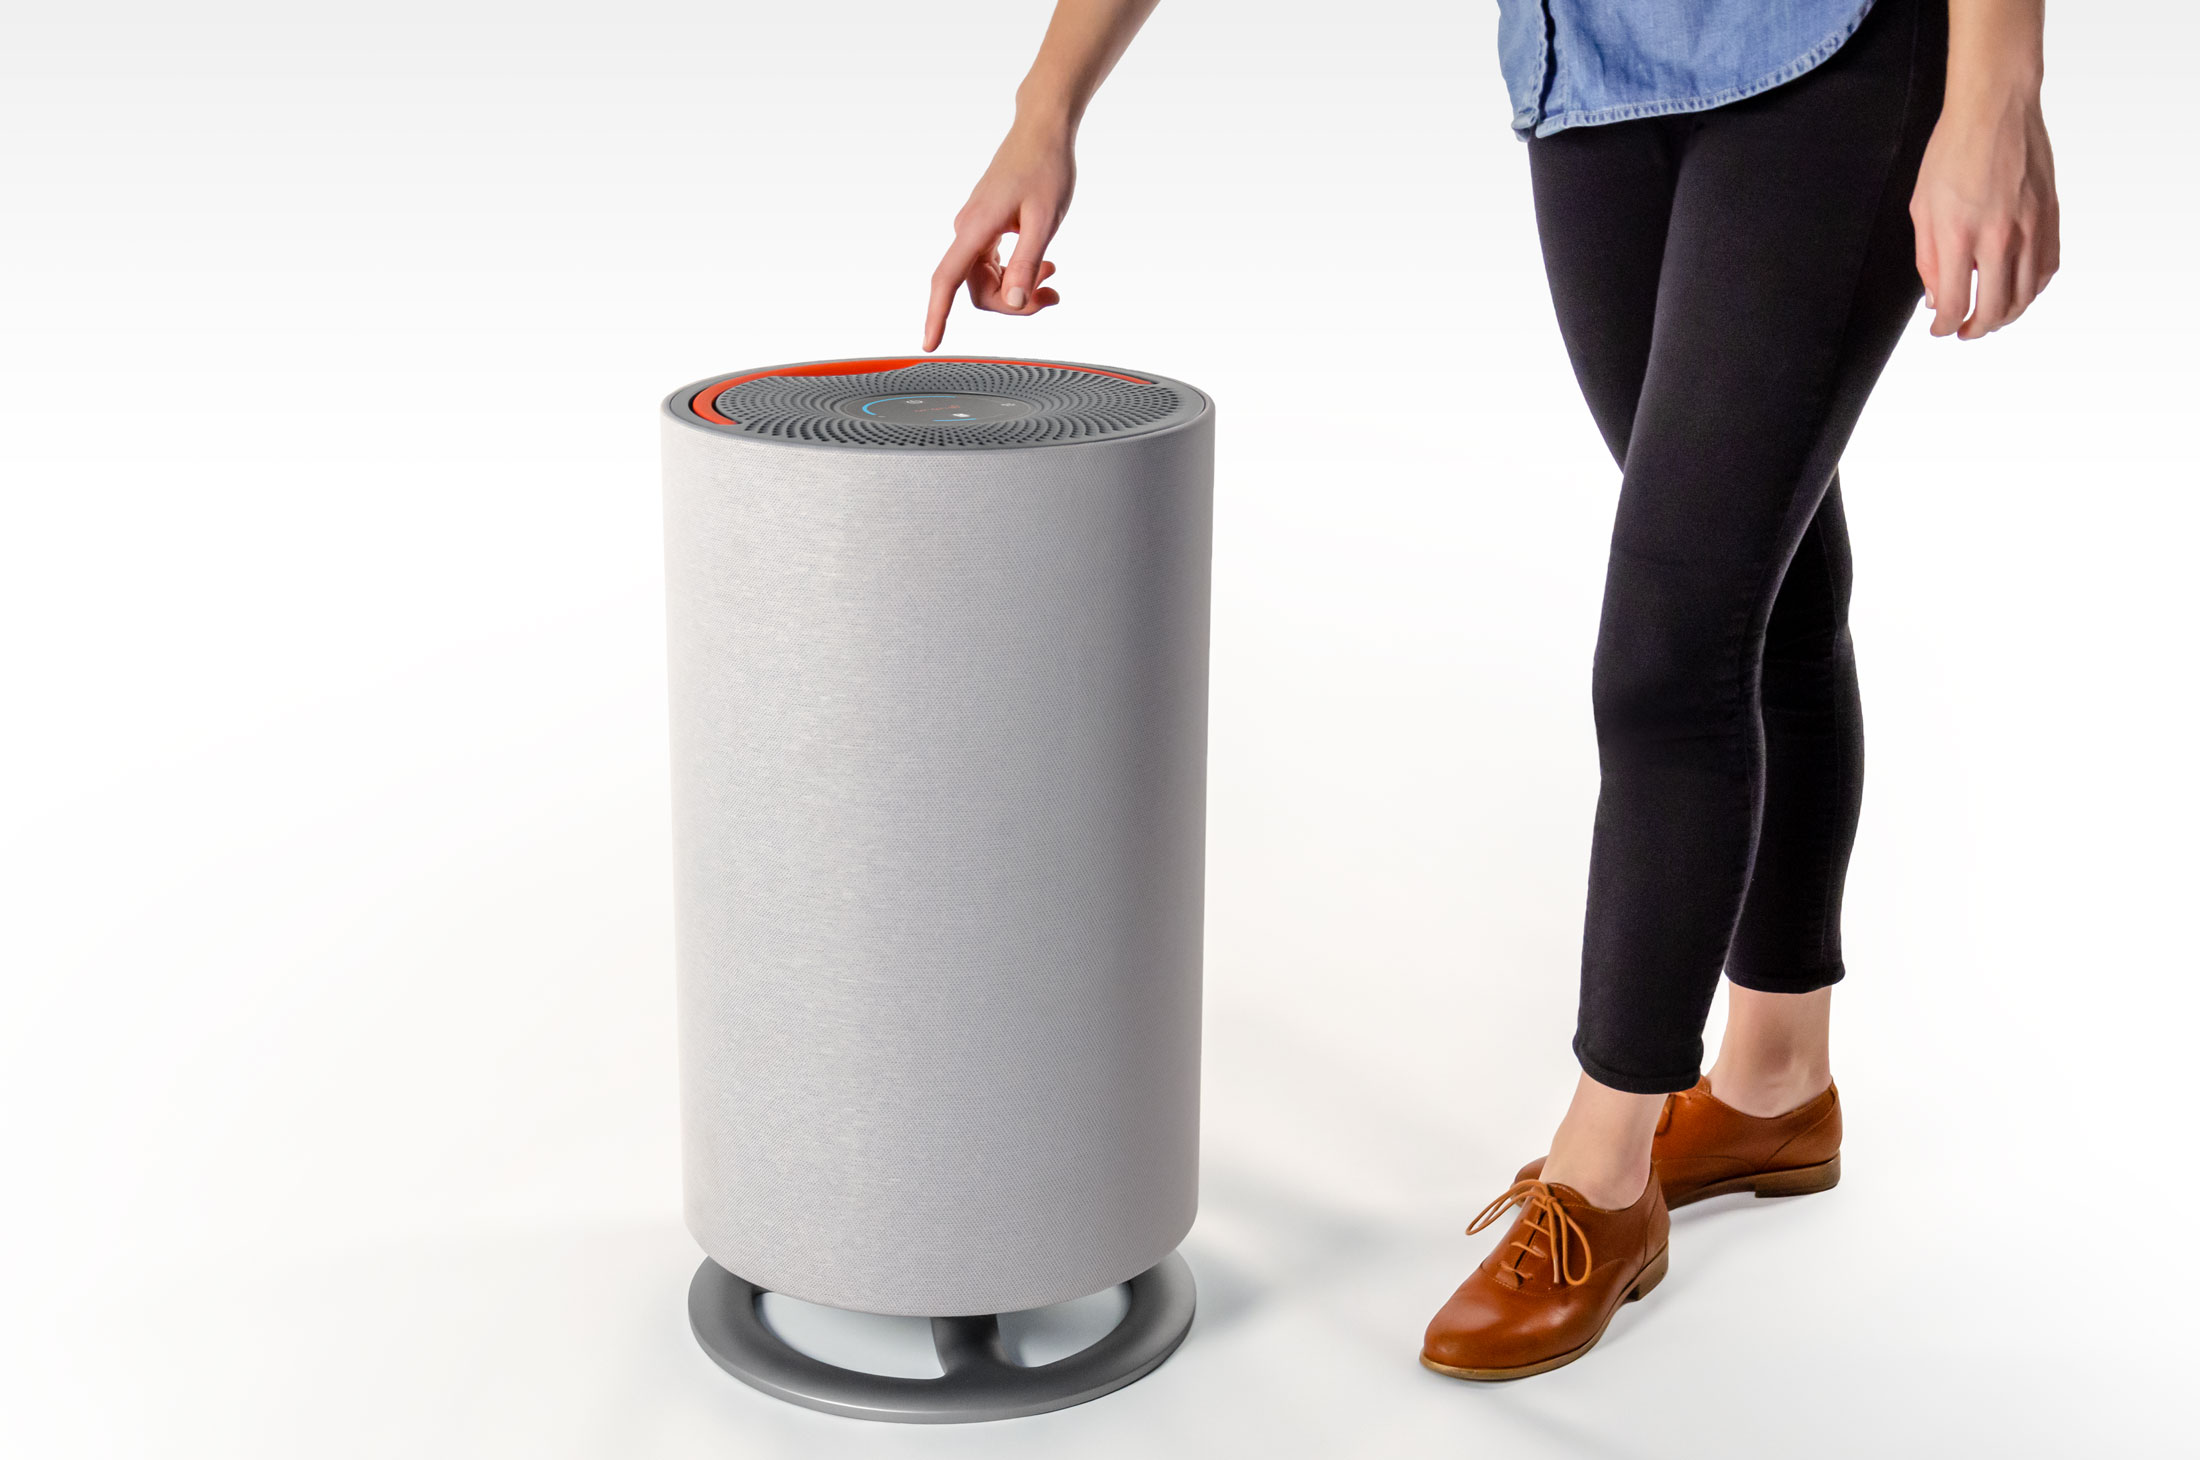 Oransi mod air purifier with person pressing controls